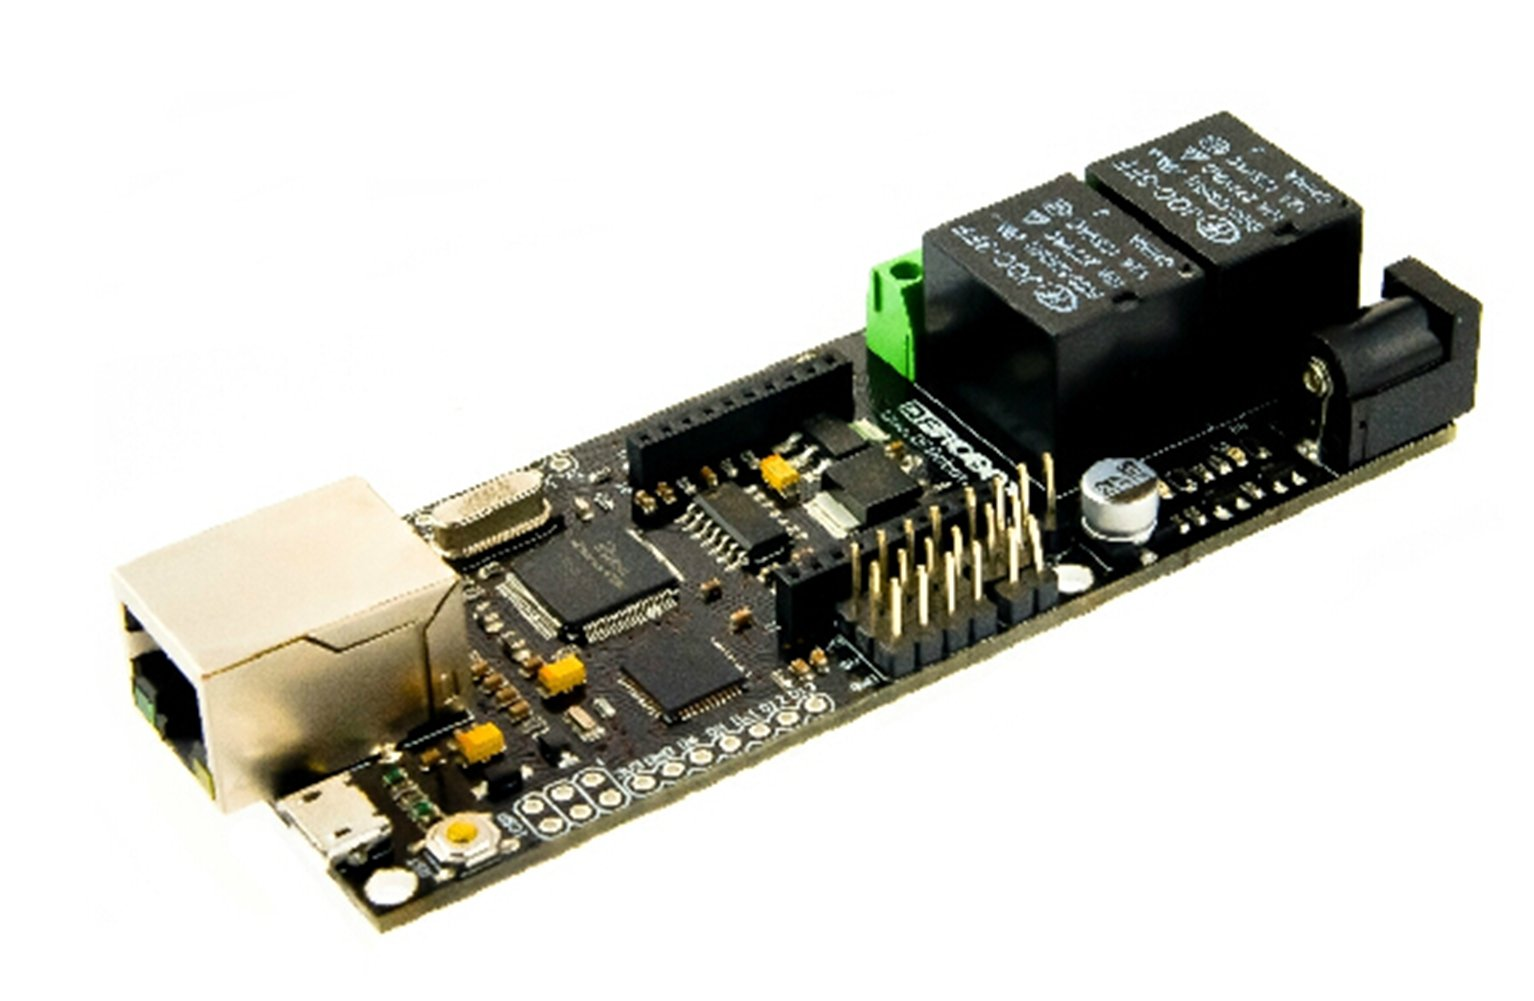 Xboard Relay/With Xboard Relay, You Can Not Only Monitor Data Through Internet, But Also Control It Through Internet